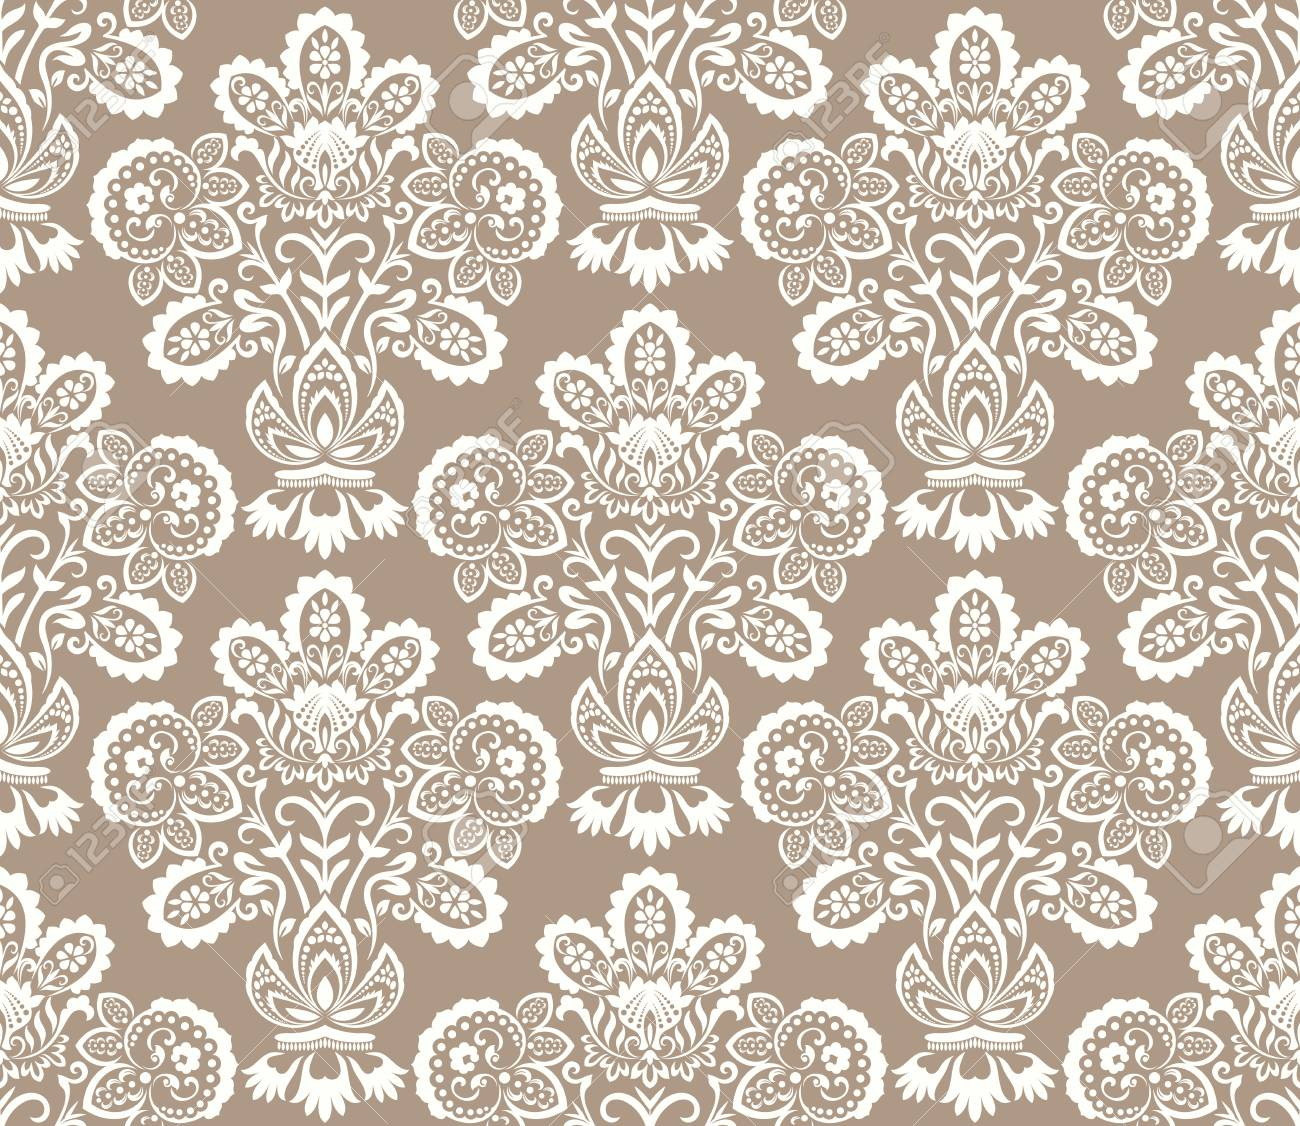 Seamless Beige And White Floral Wallpaper Vector Background